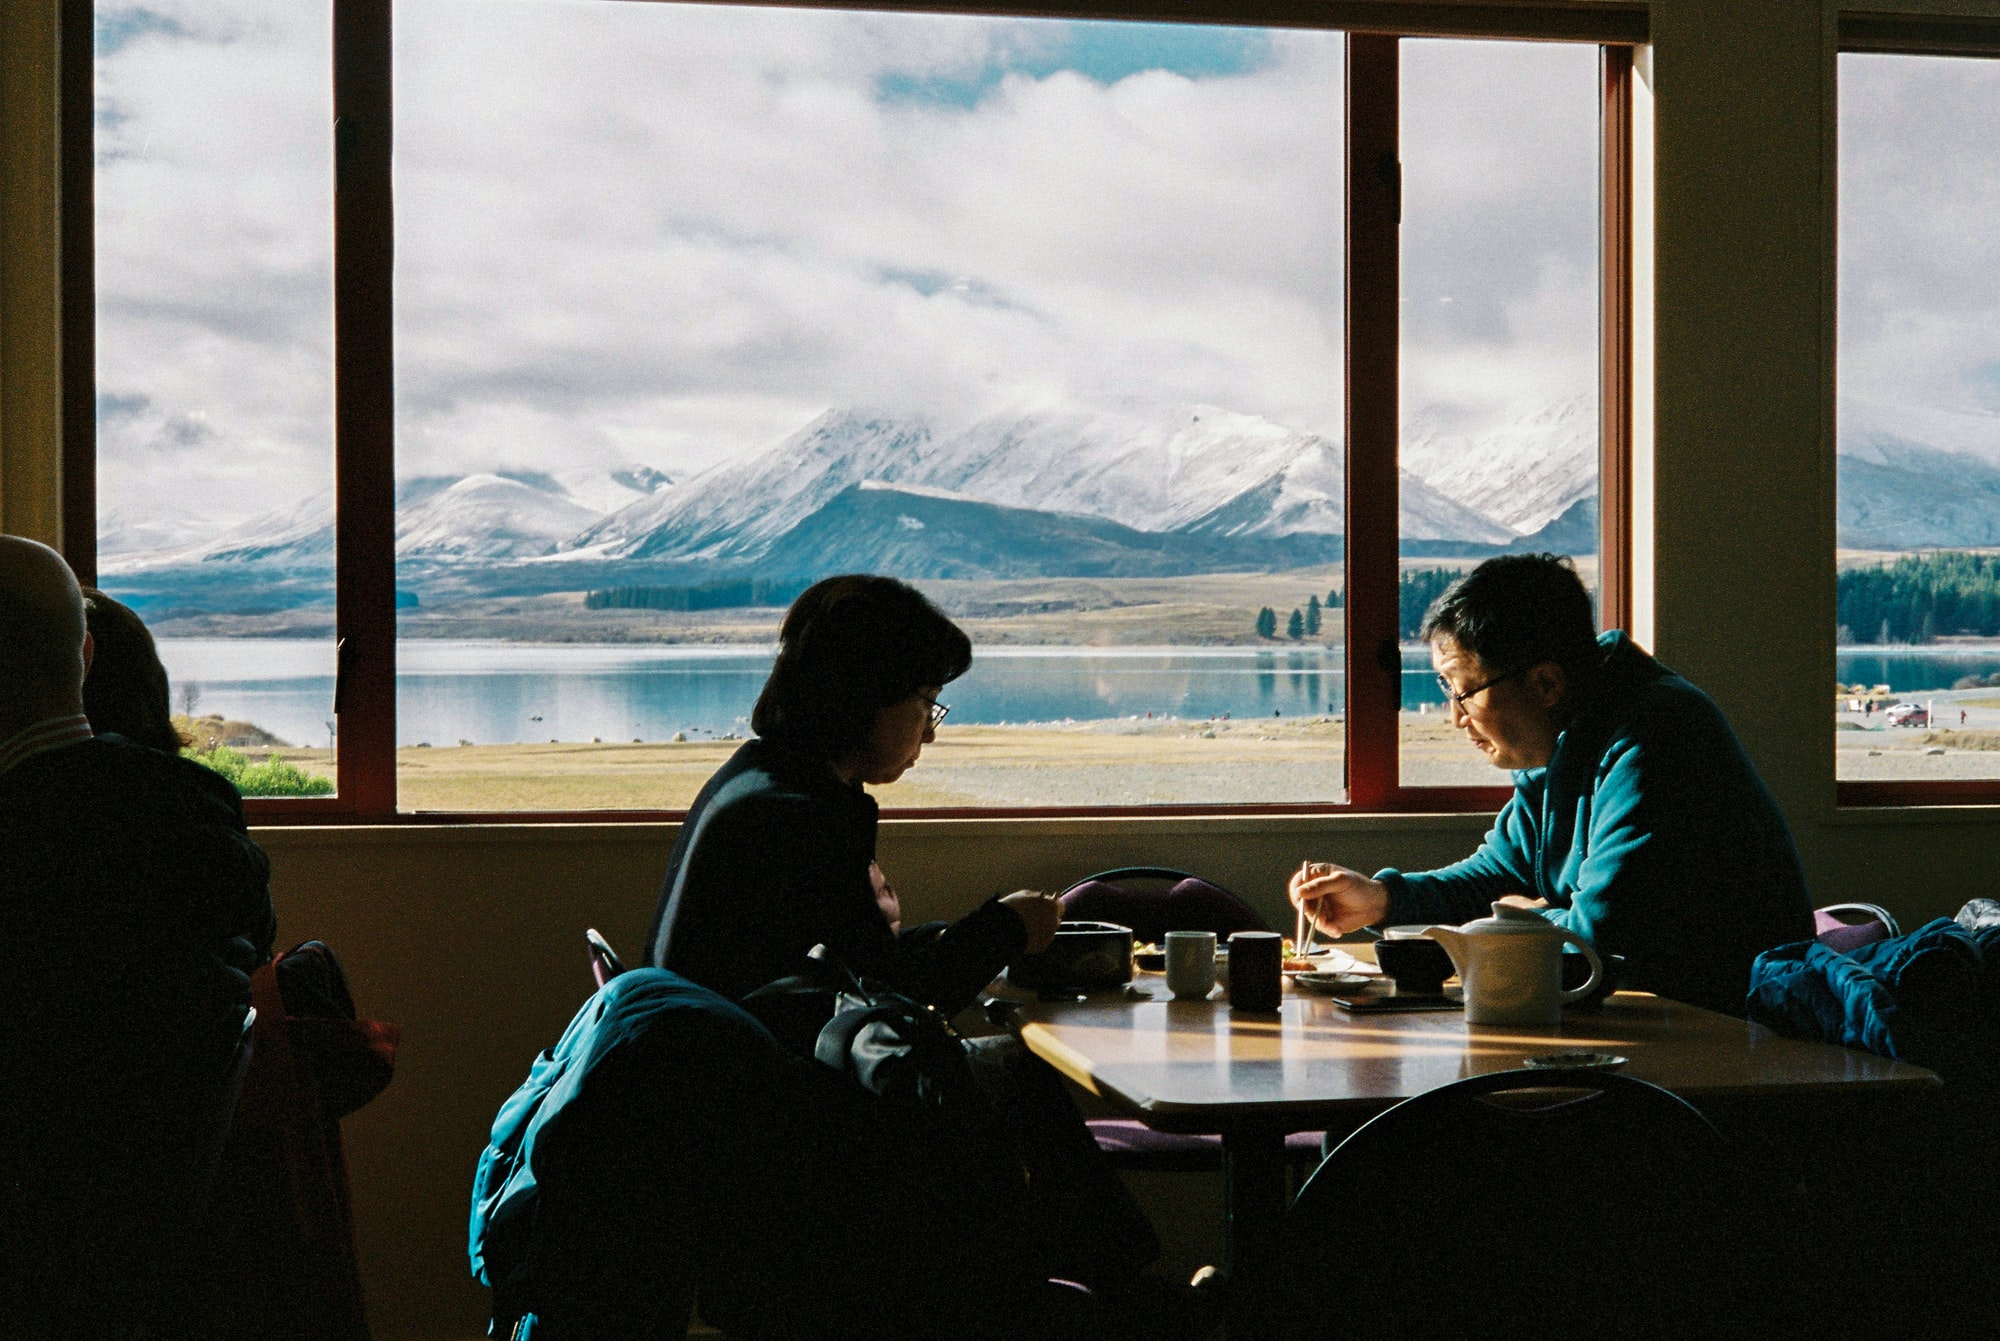 Lunch with a view. A tourist couple eating lunch at a Japanese restaurant next to Lake Tekapo, New Zealand.